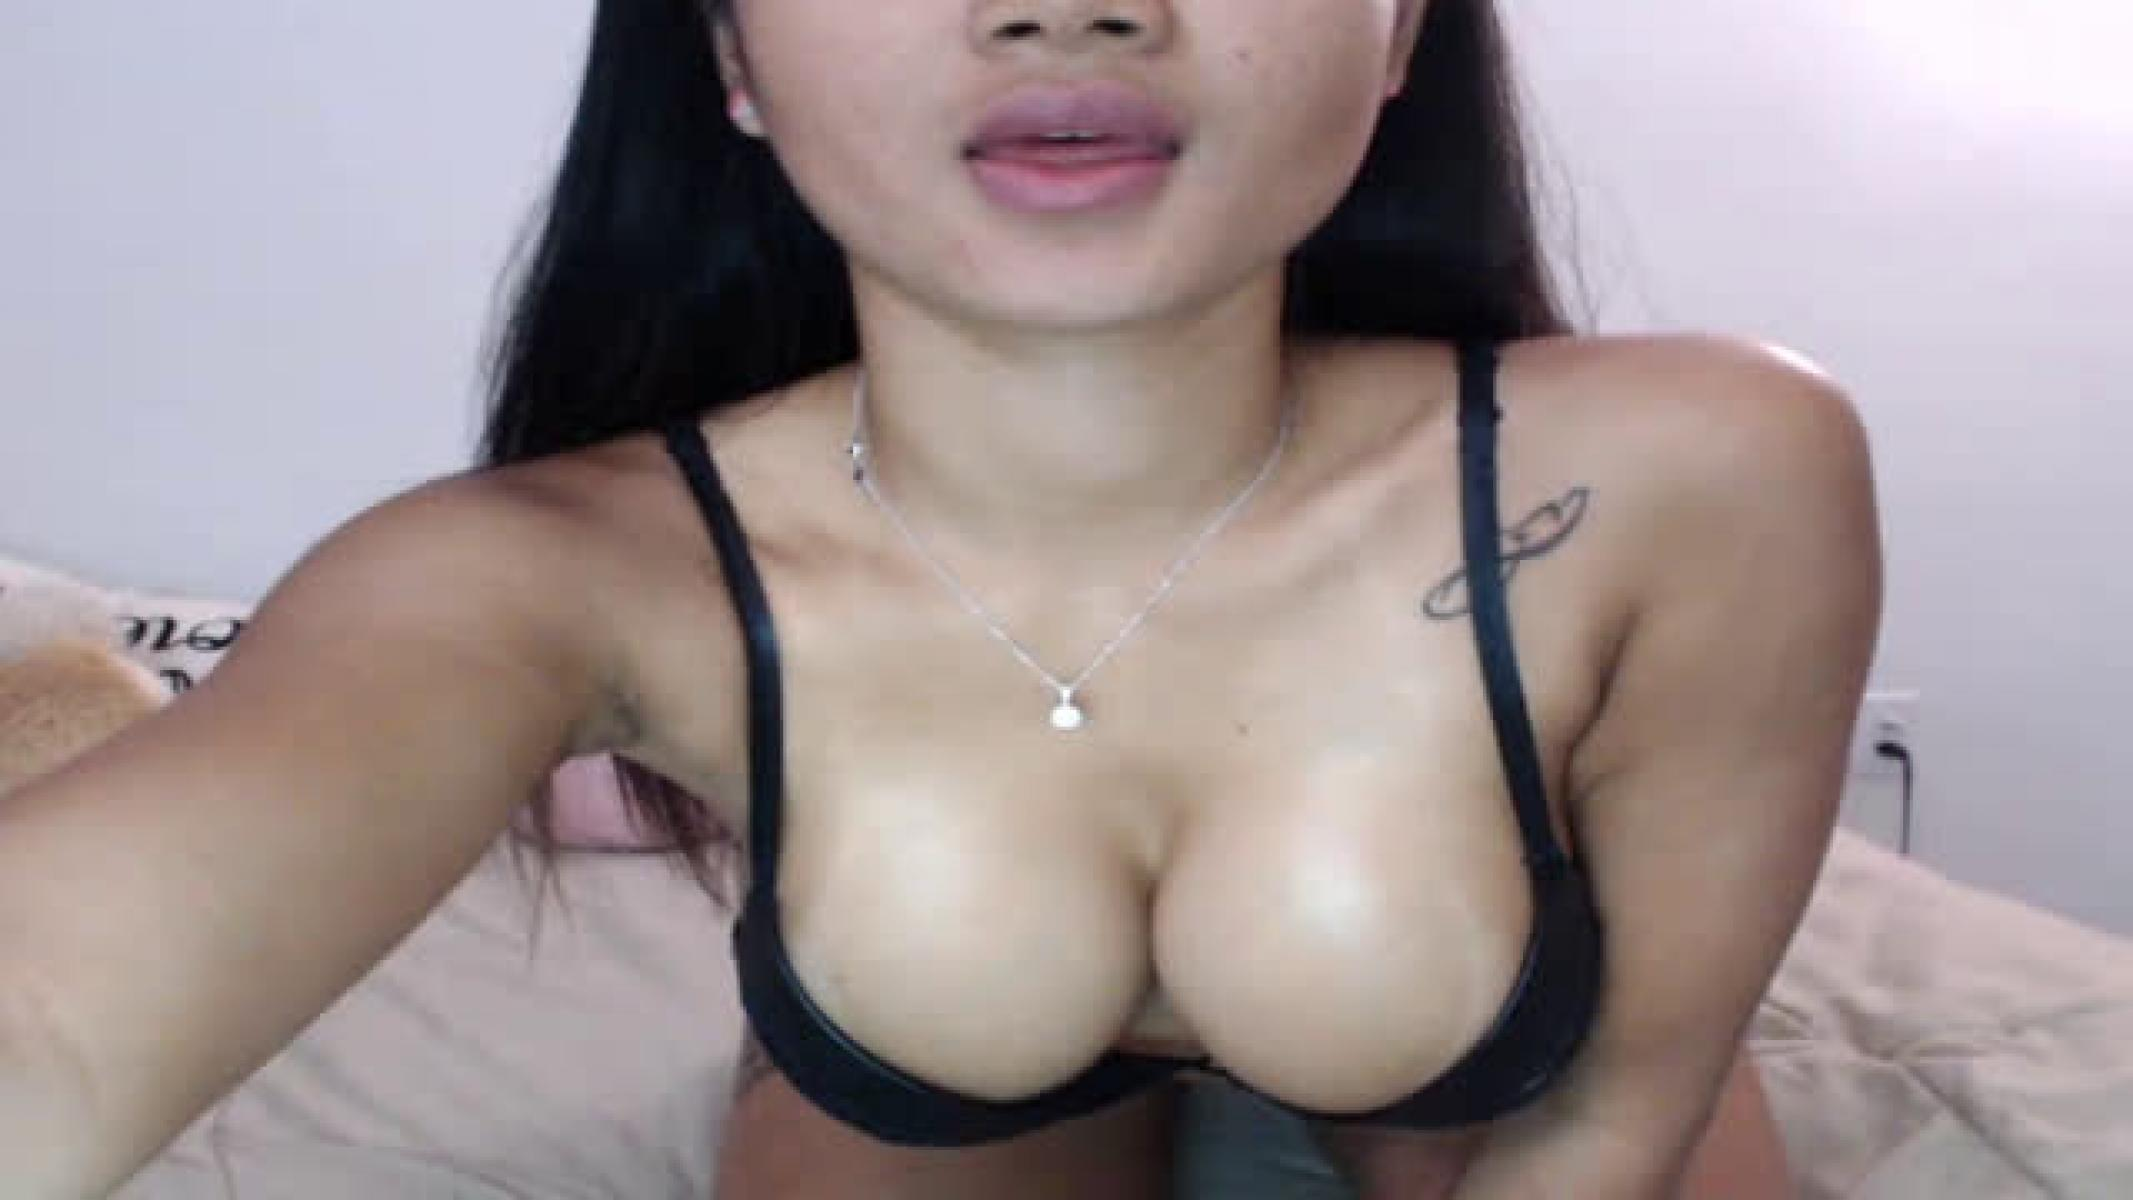 Sexymaithai Webcam Videos May 2018